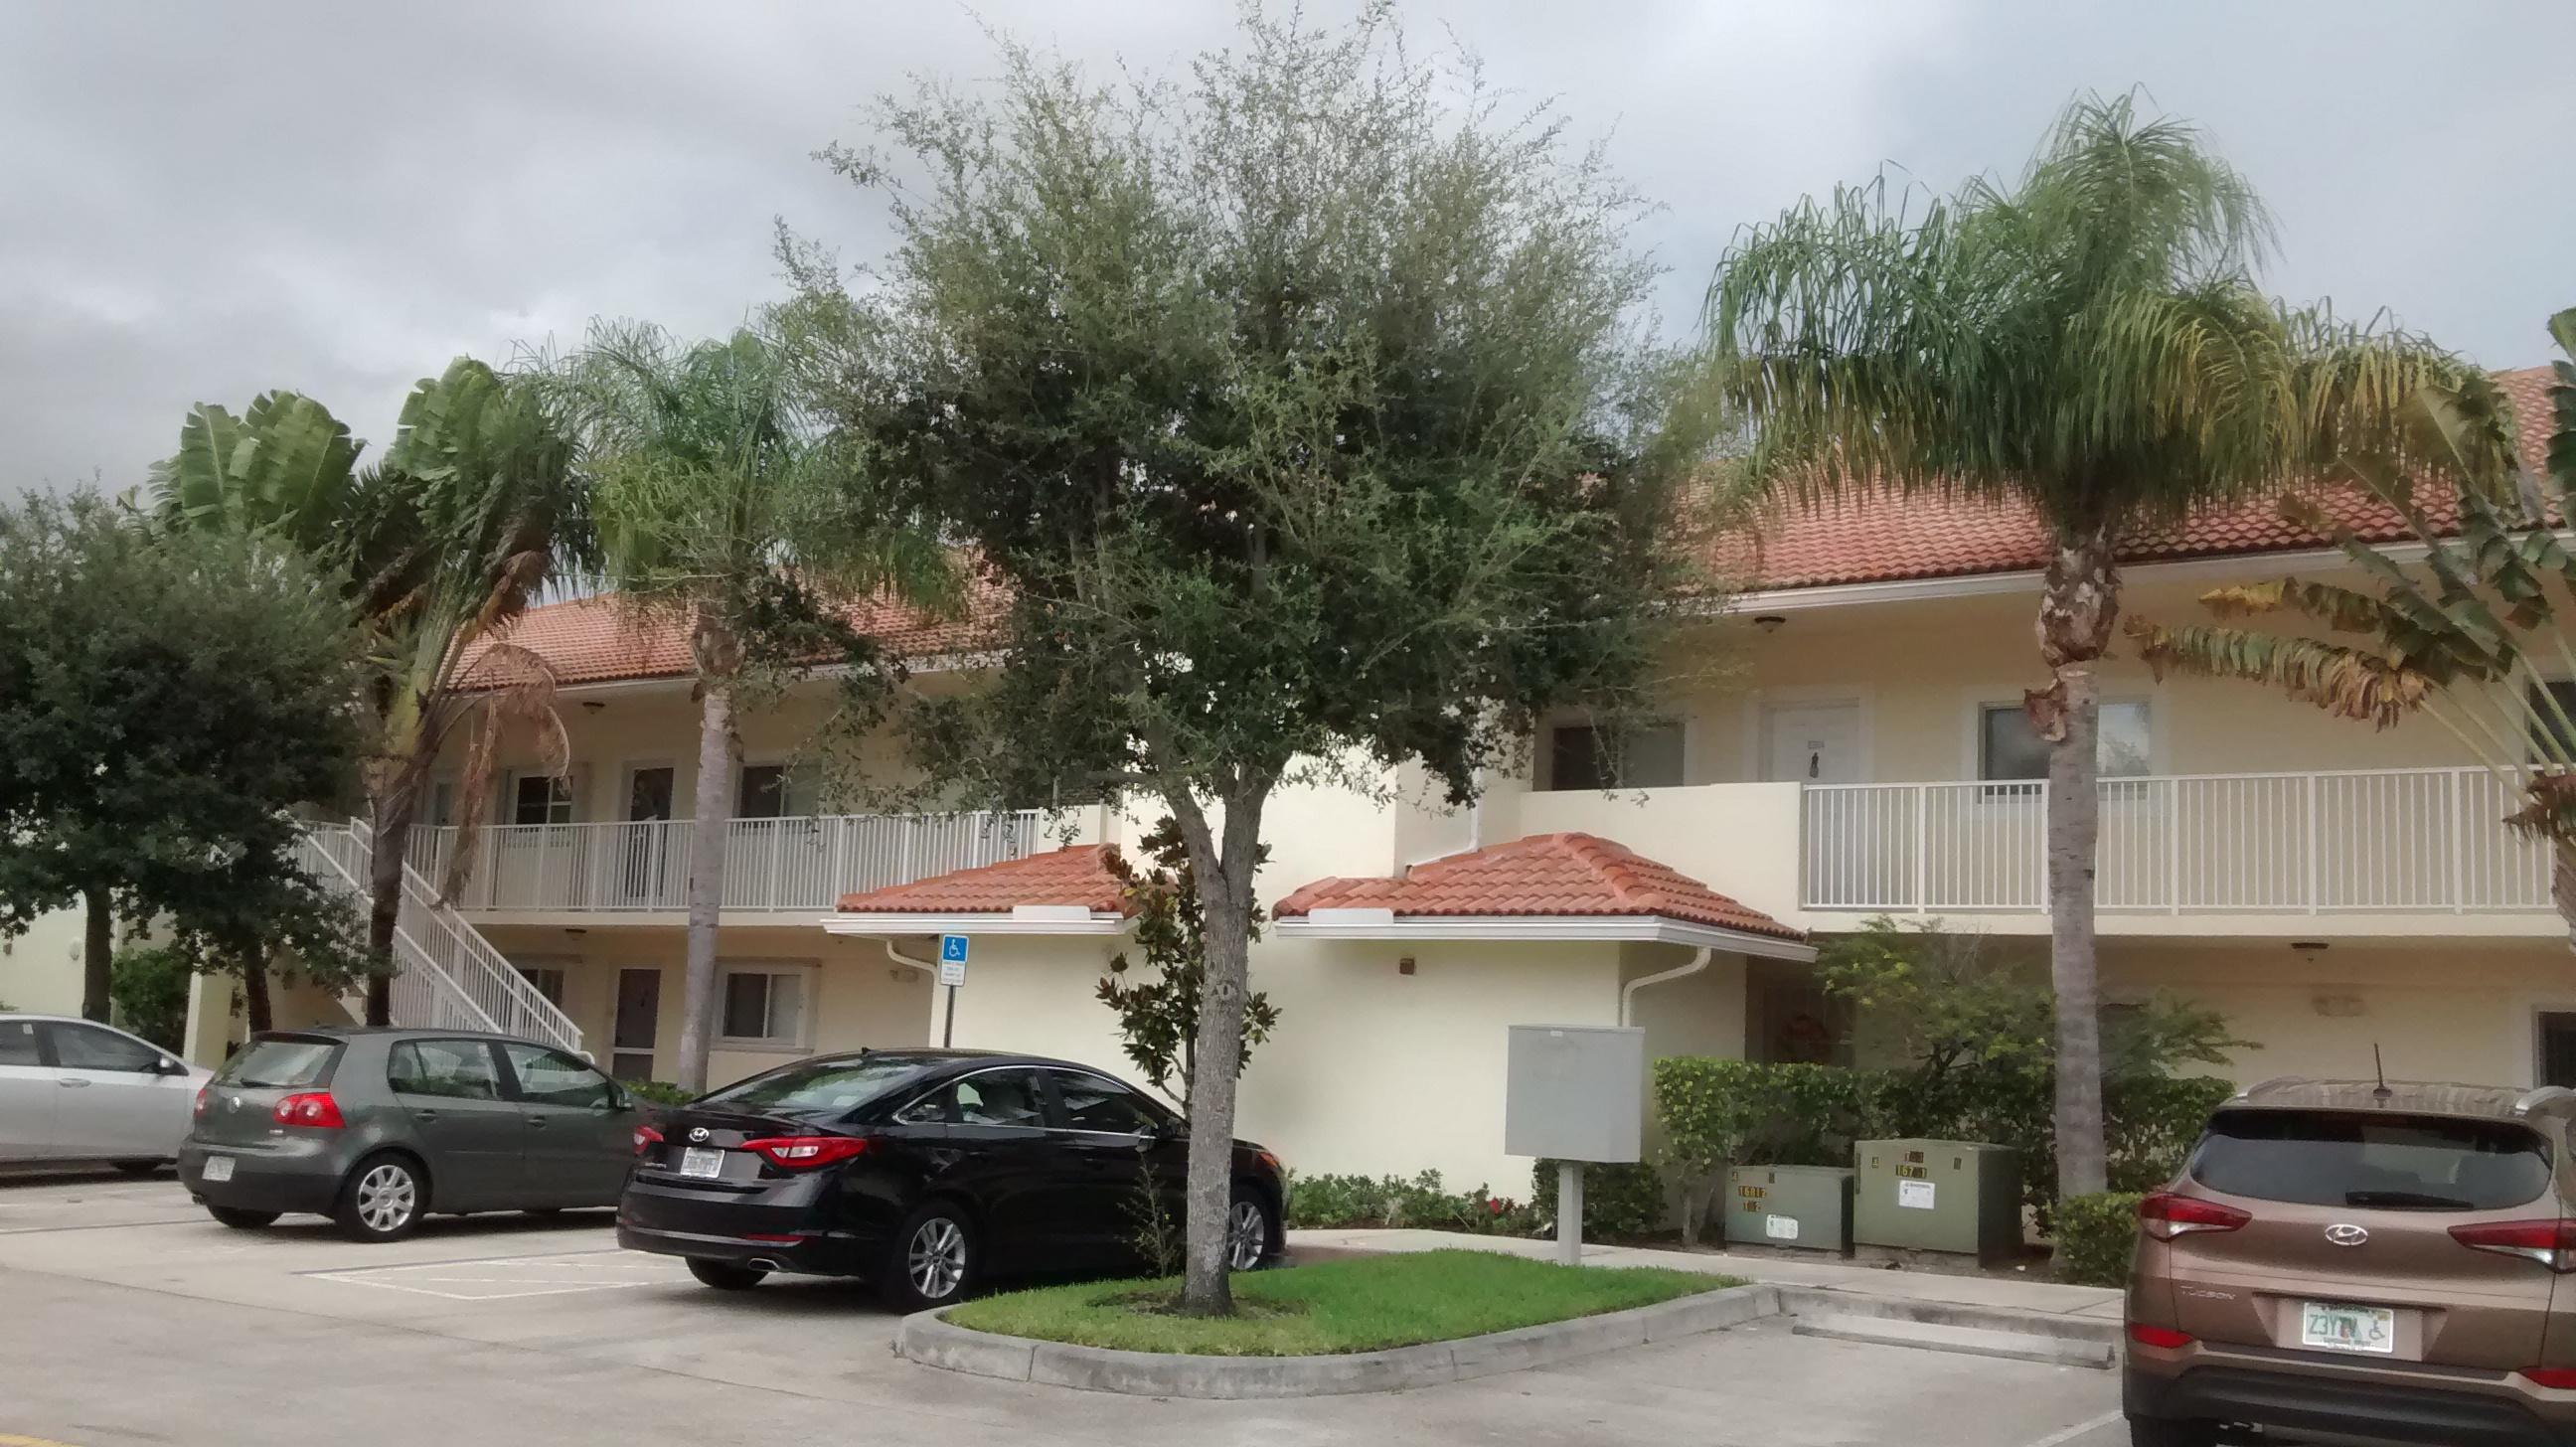 3474 Cypress Trail, West Palm Beach, Florida 33417, 2 Bedrooms Bedrooms, ,2 BathroomsBathrooms,Condo/Coop,For Rent,Cypress Trail,Cypress,2,RX-10529647